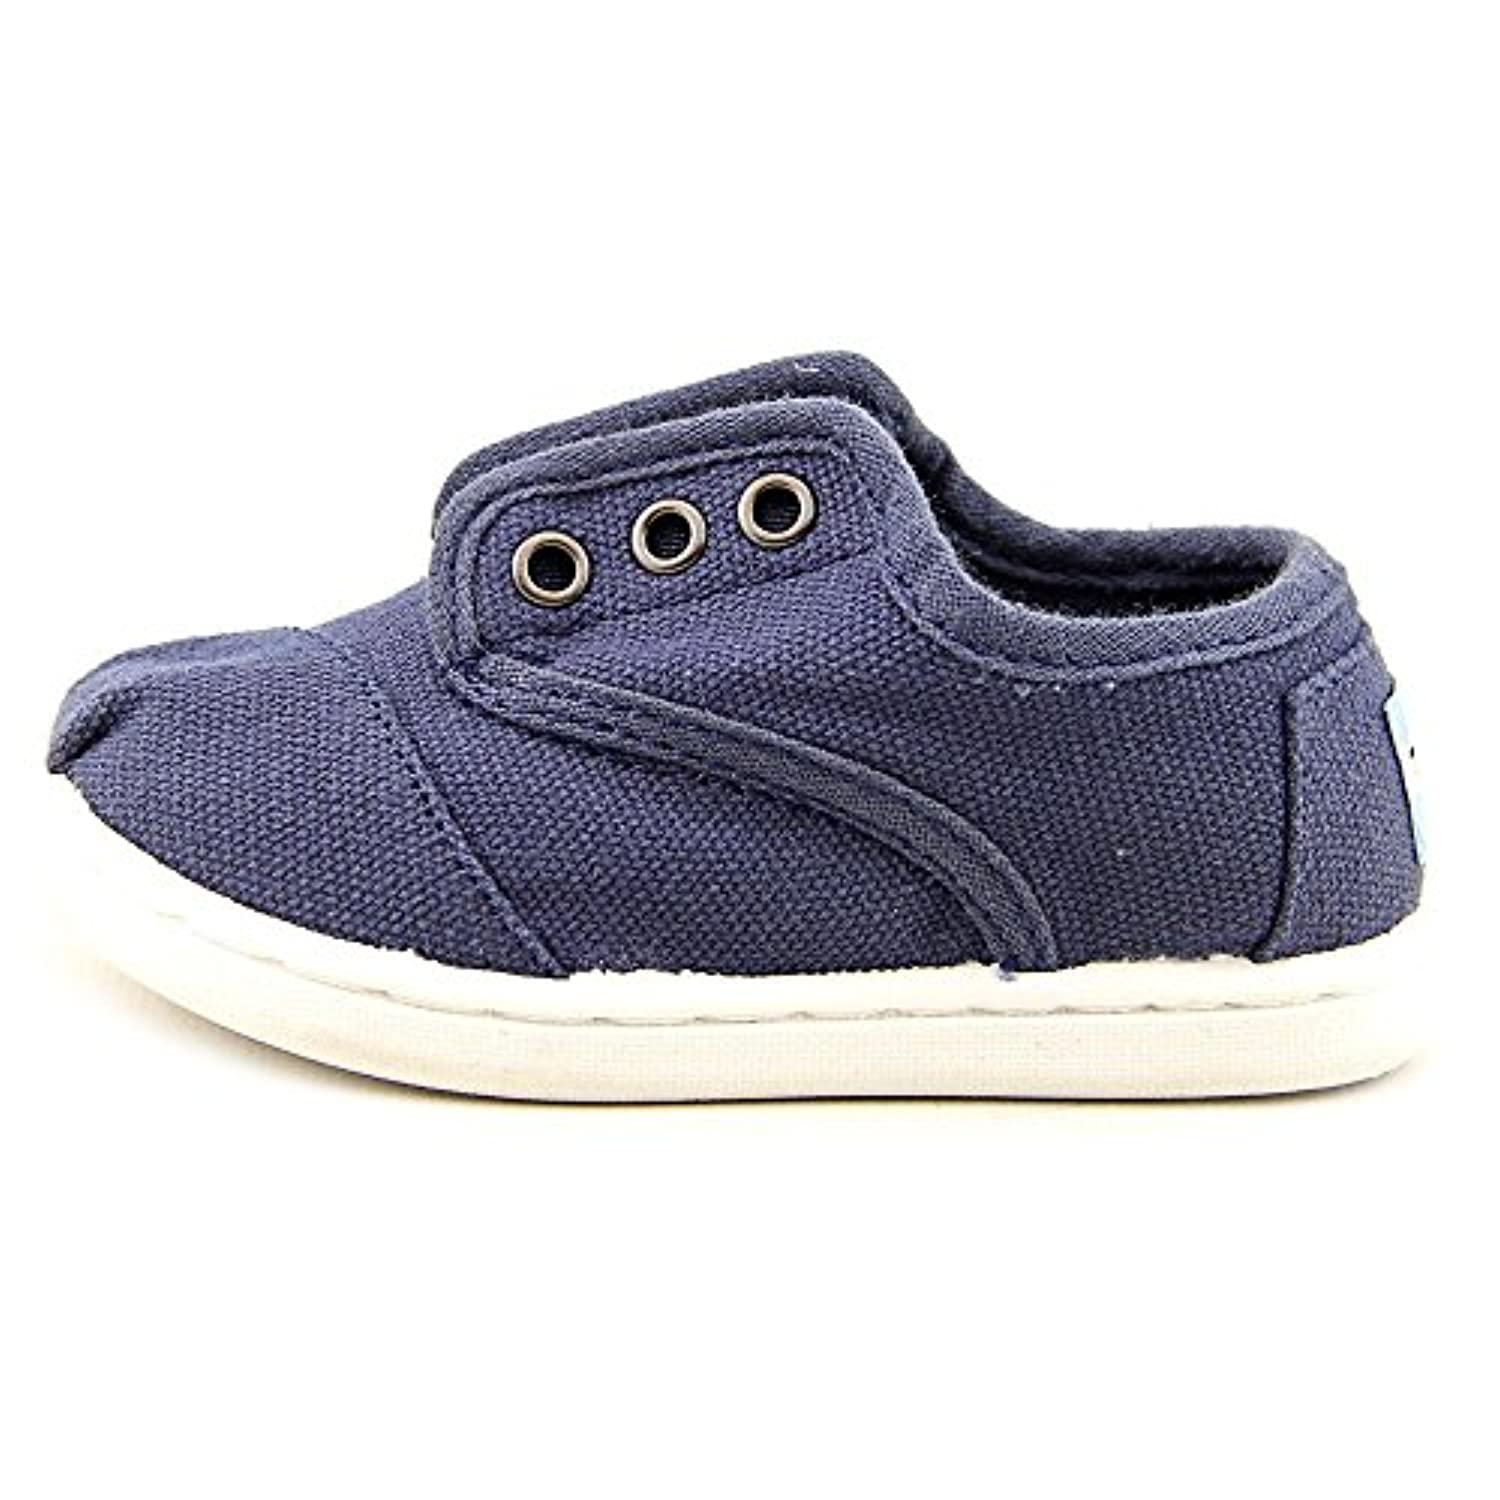 Toms Cordones Toddler US 5 Blue Tennis Shoe